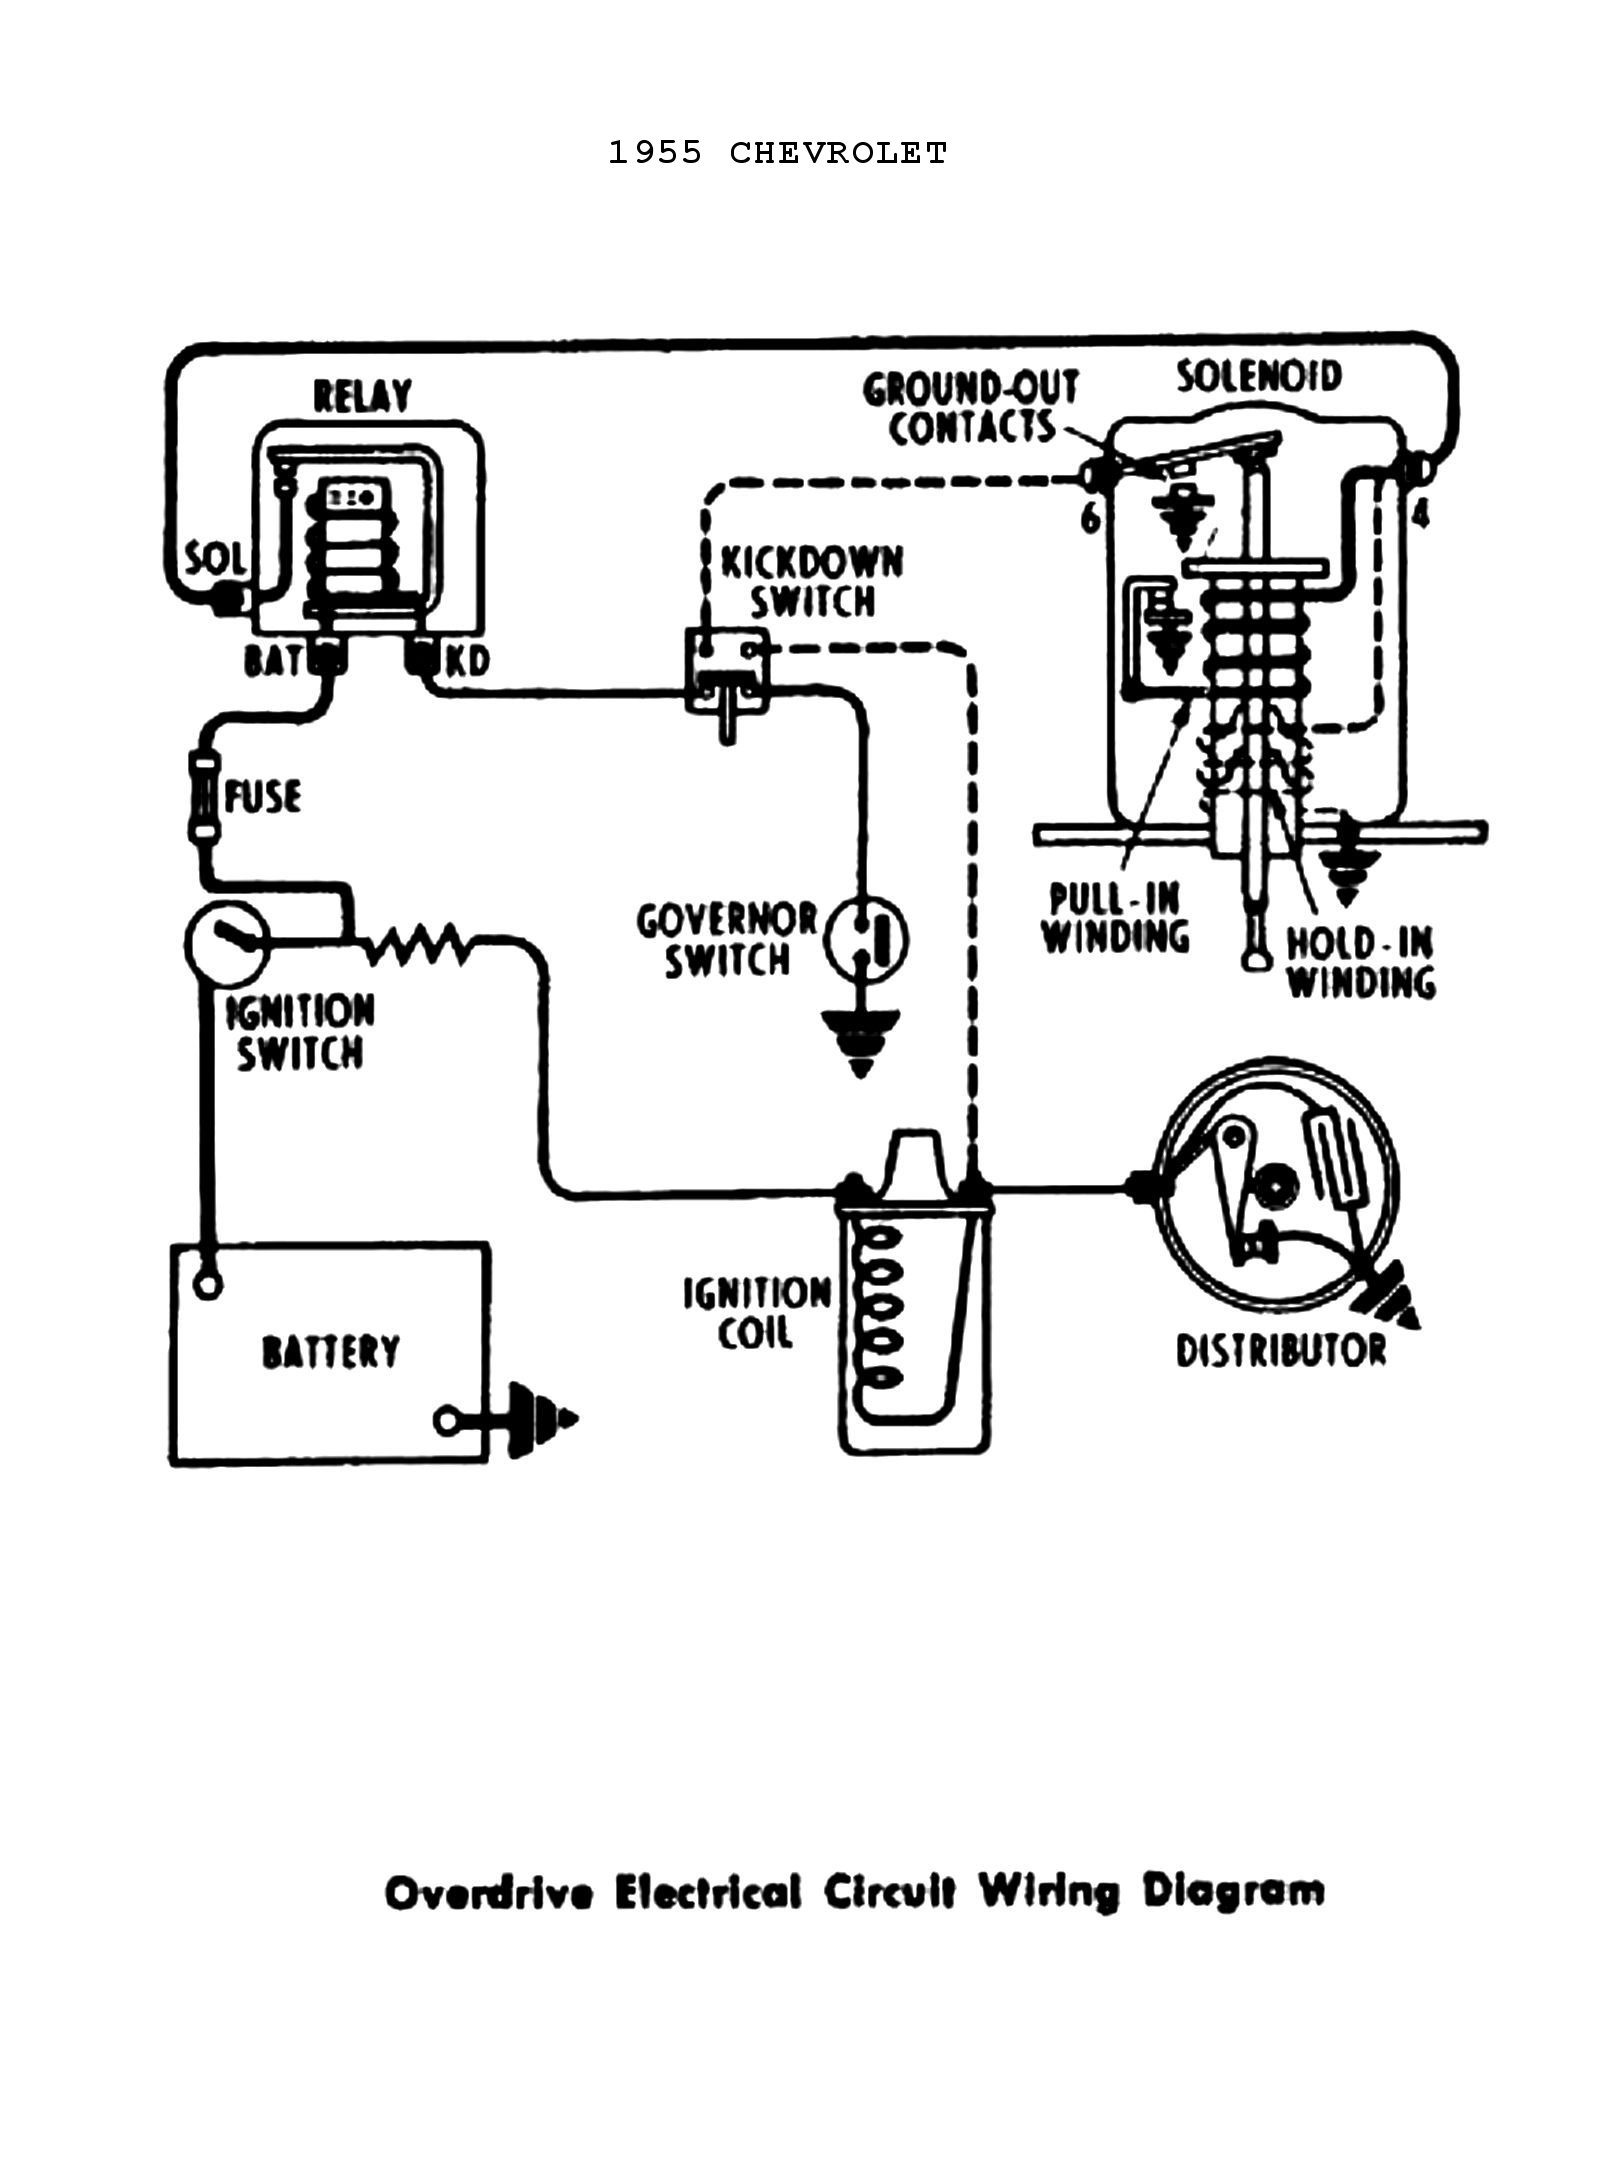 700r4 trans pump diagram  700r4  free engine image for